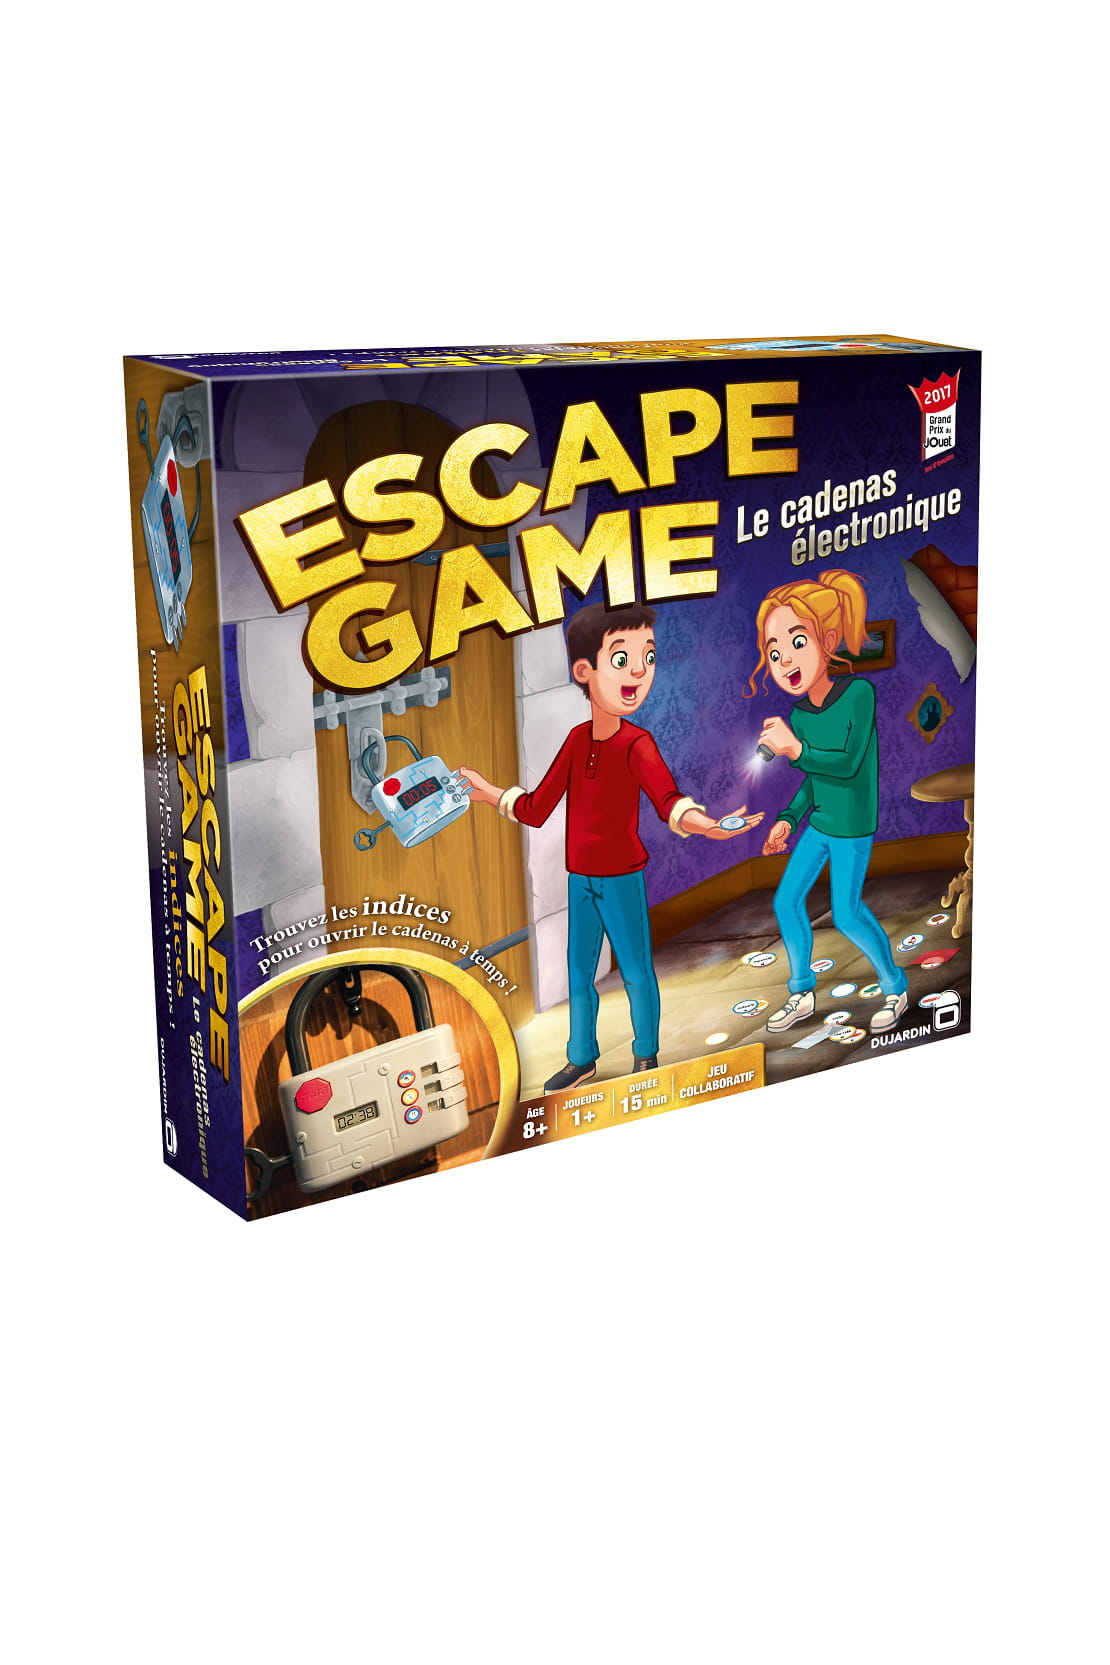 Jeu escape game dujardin for 99 f dujardin